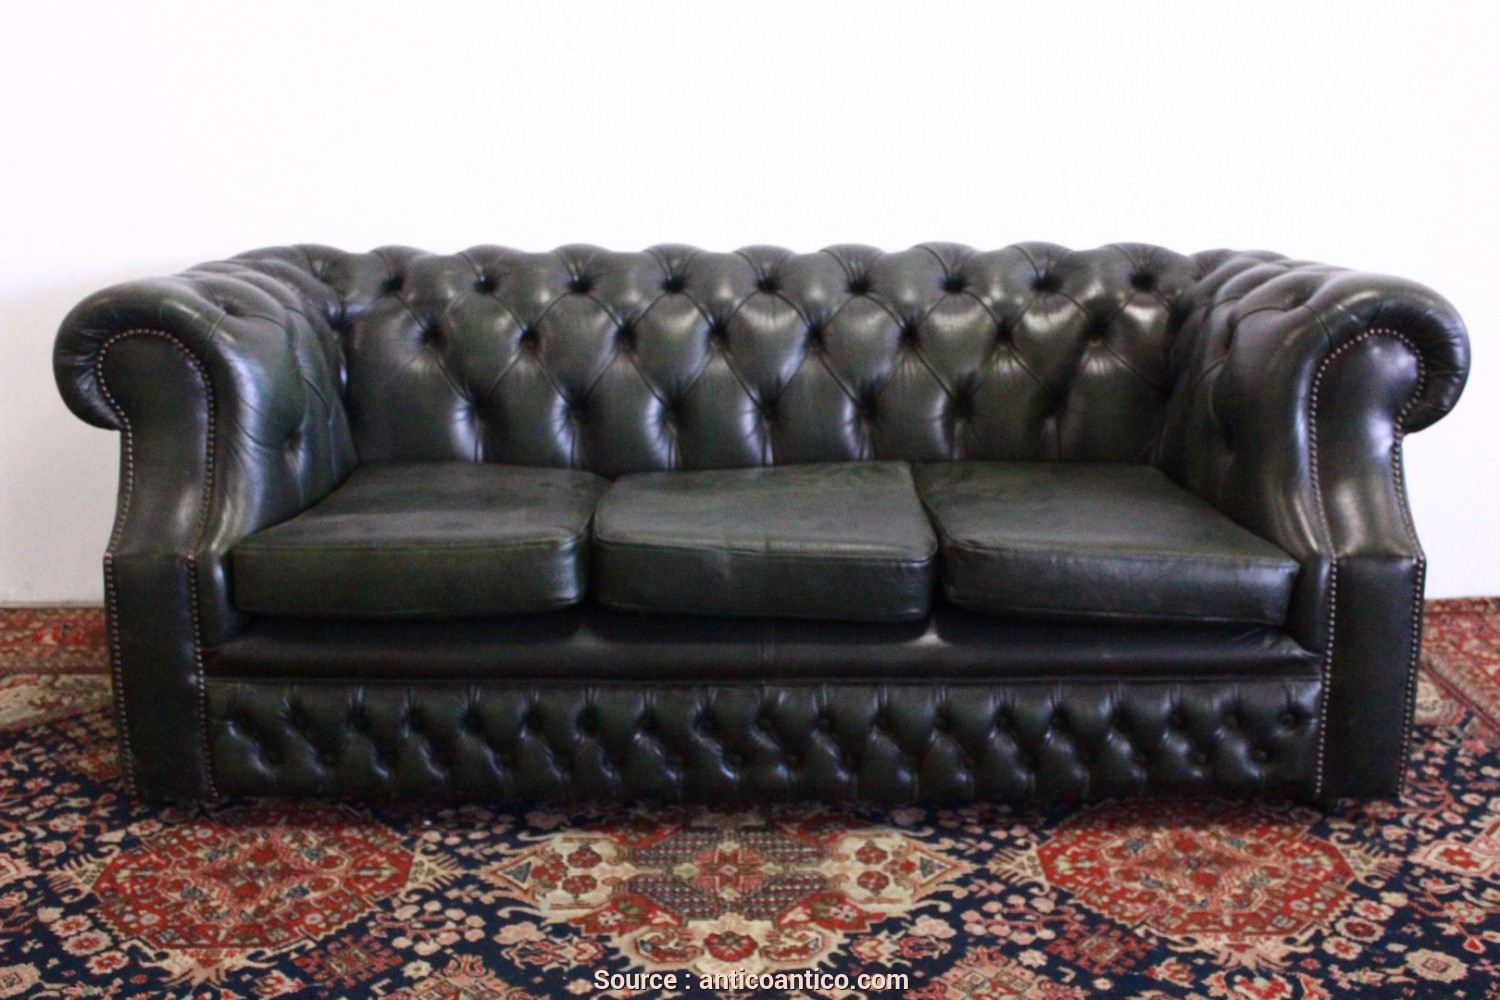 Divano Chesterfield Epoca, Delizioso Divano Chesterfield 3 Posti In Pelle Verde Originale Made In UK